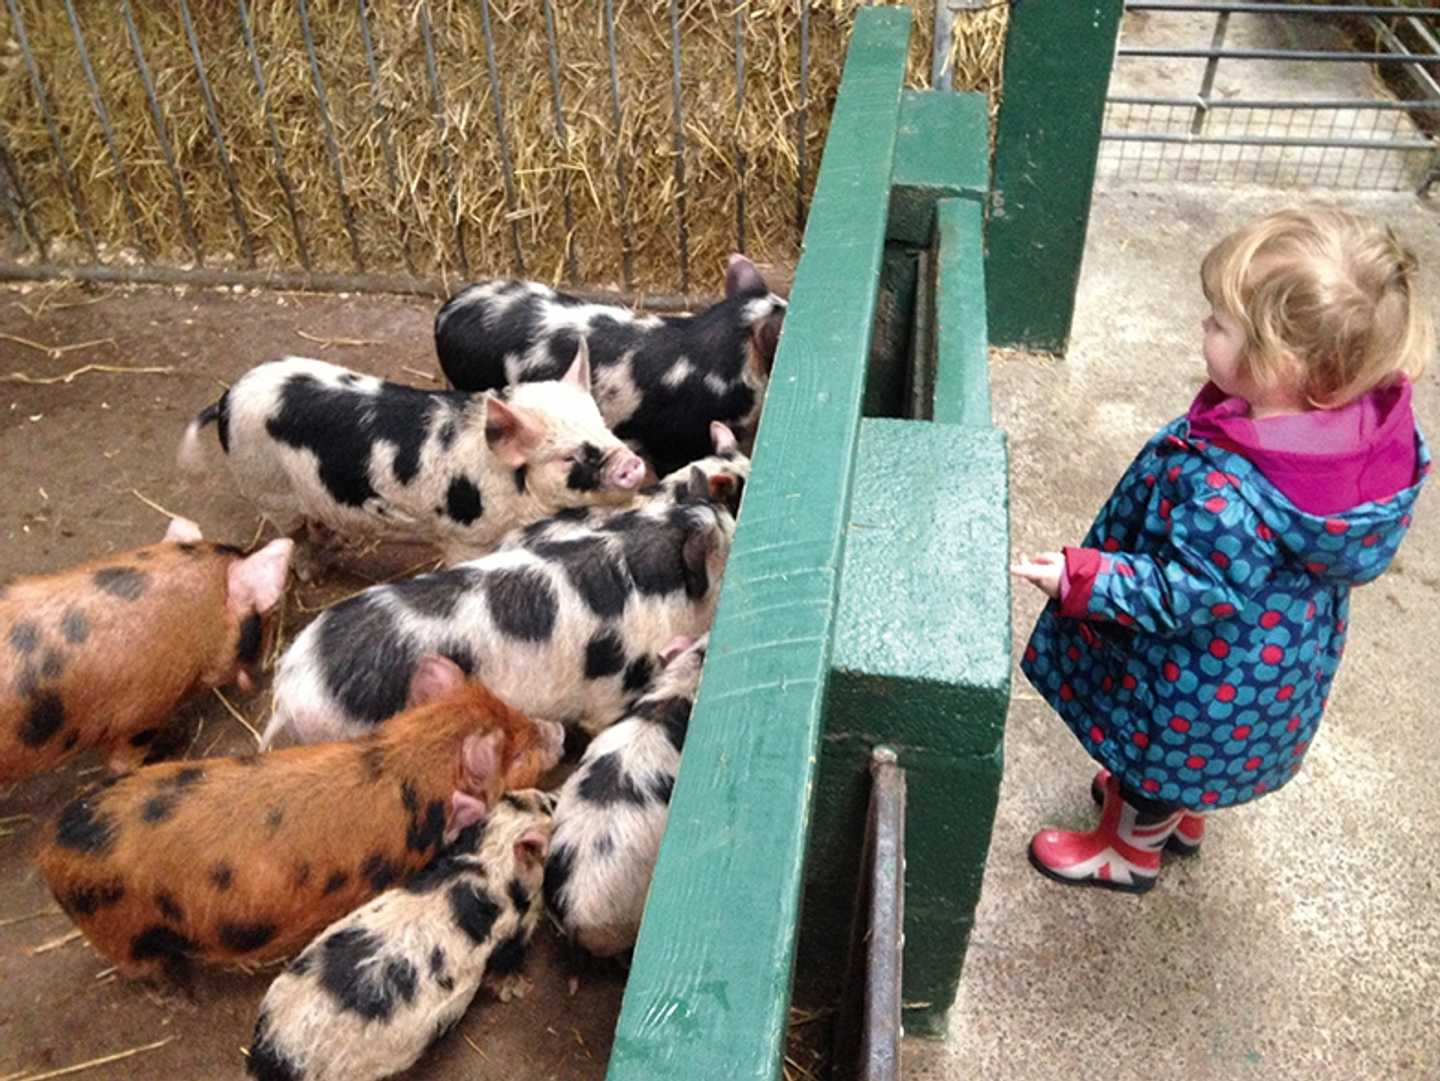 A little girl looking at pigglets at Farmer Palmer's Farm Park